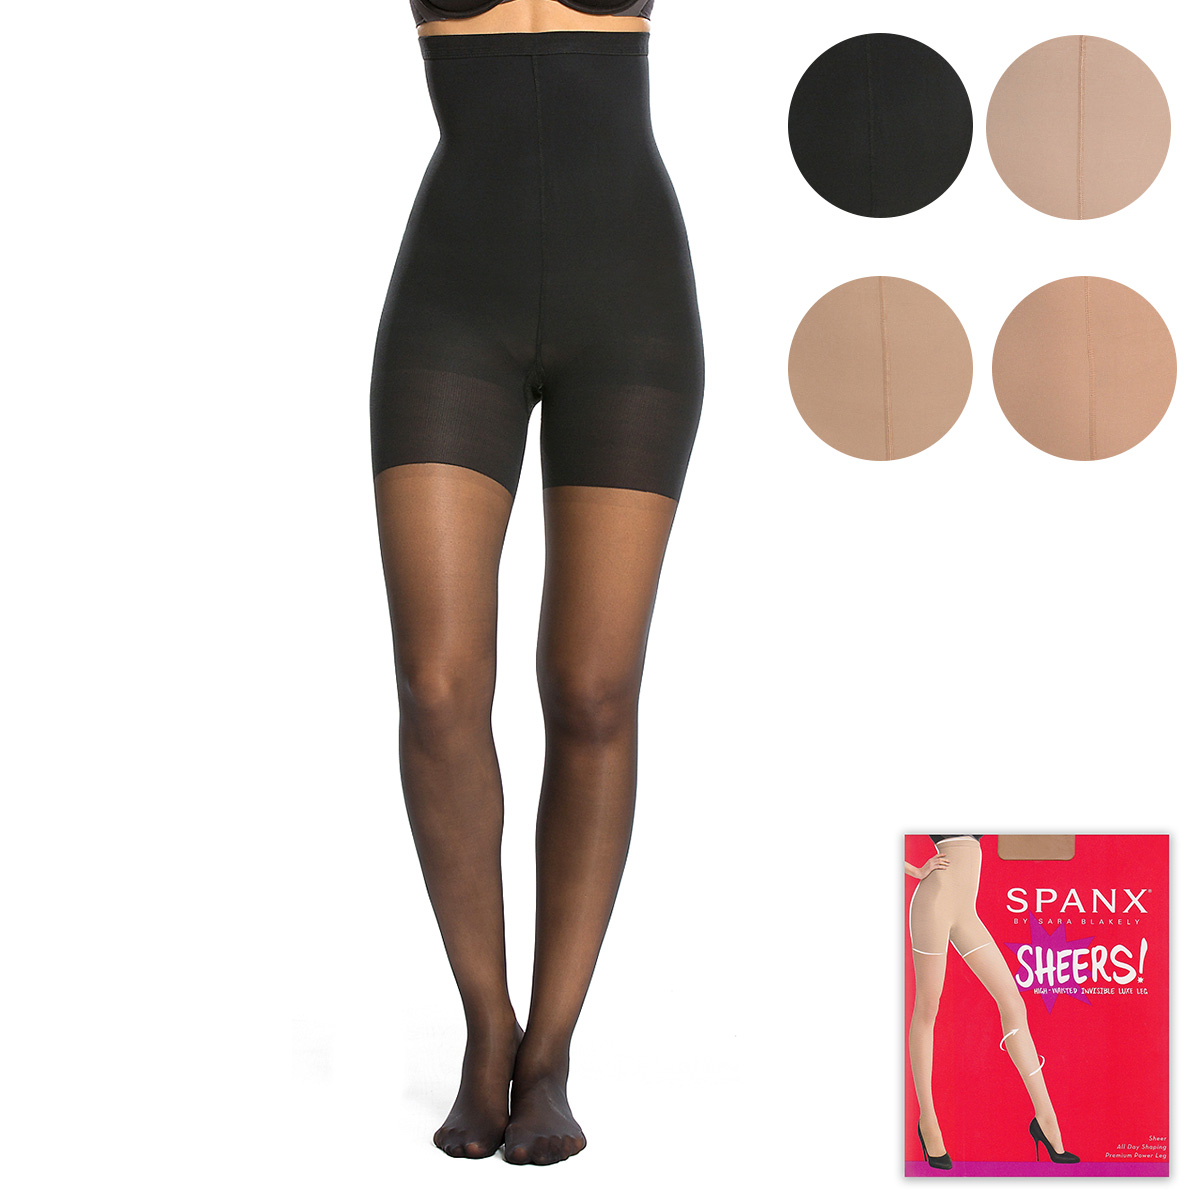 085fba3218e SPANX LUXE LEG HIGH-WAISTED MID-THIGH SHAPING SHEERS flats revision  underwear girdle shorts ...